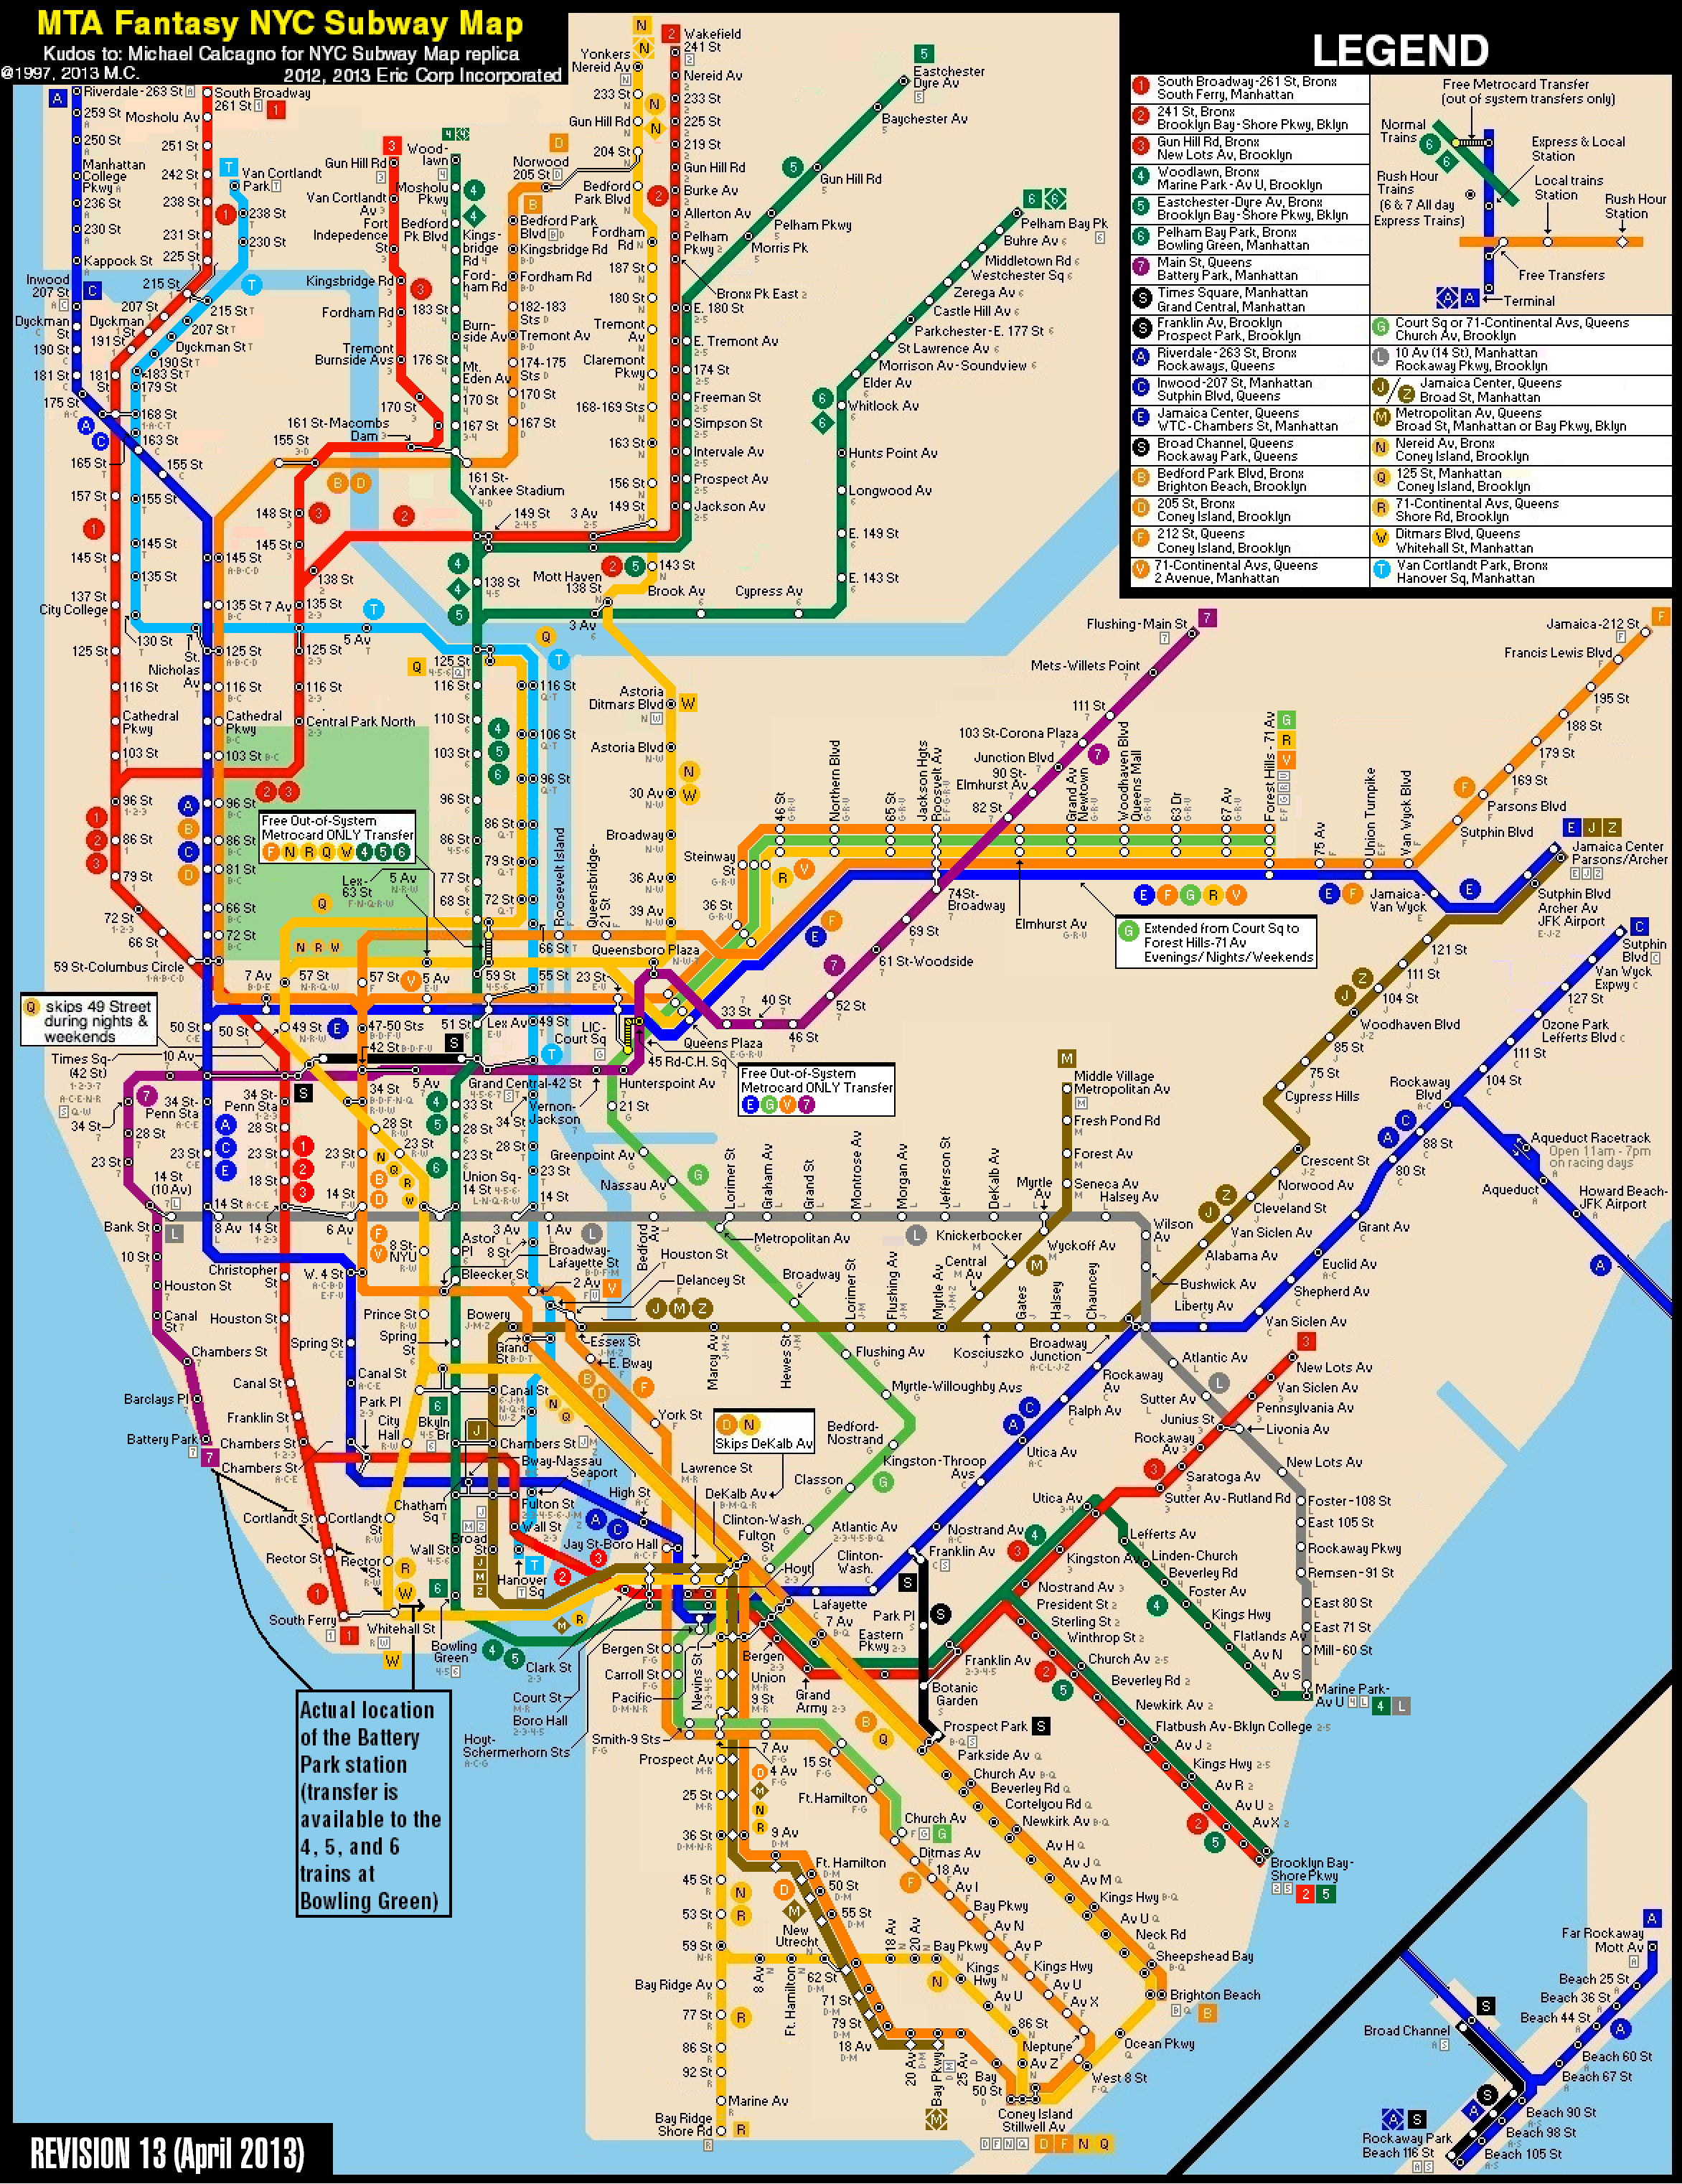 Download New York Subway Map.New York Subway Map New York City Subway Fantasy Map Revision 13